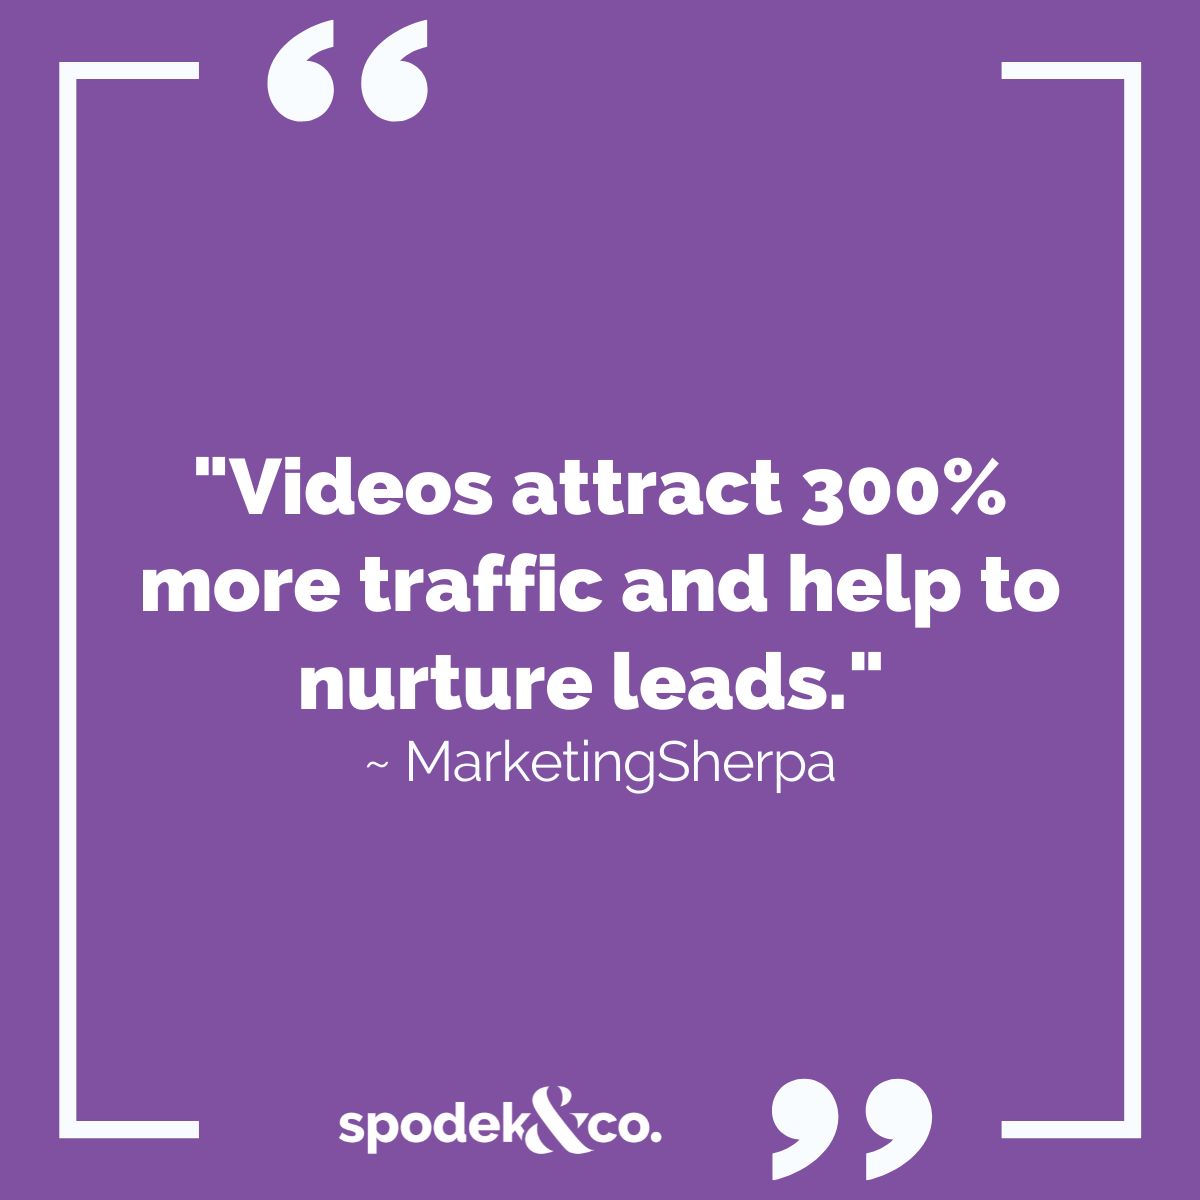 How to Incorporate Social Video and Audio in Your Marketing Mix